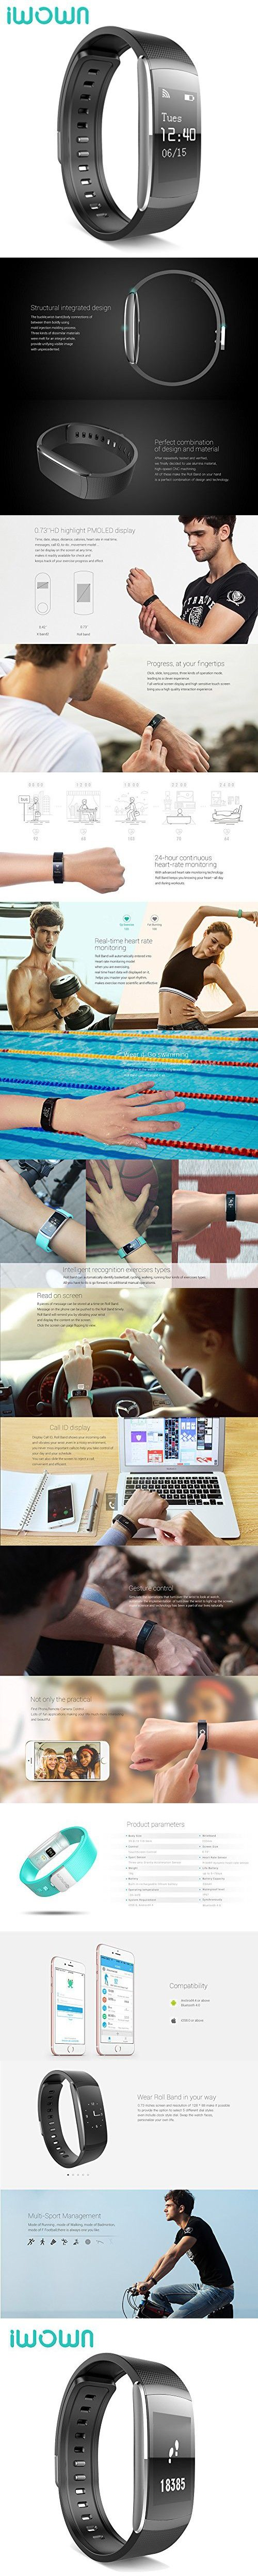 IWOWNFIT I6 PRO Smart Wristband Fitness Tracker Heart Rate Monitor IP67 Waterproof Bluetooth Smart Band Bracelet for Android IOS (Black)